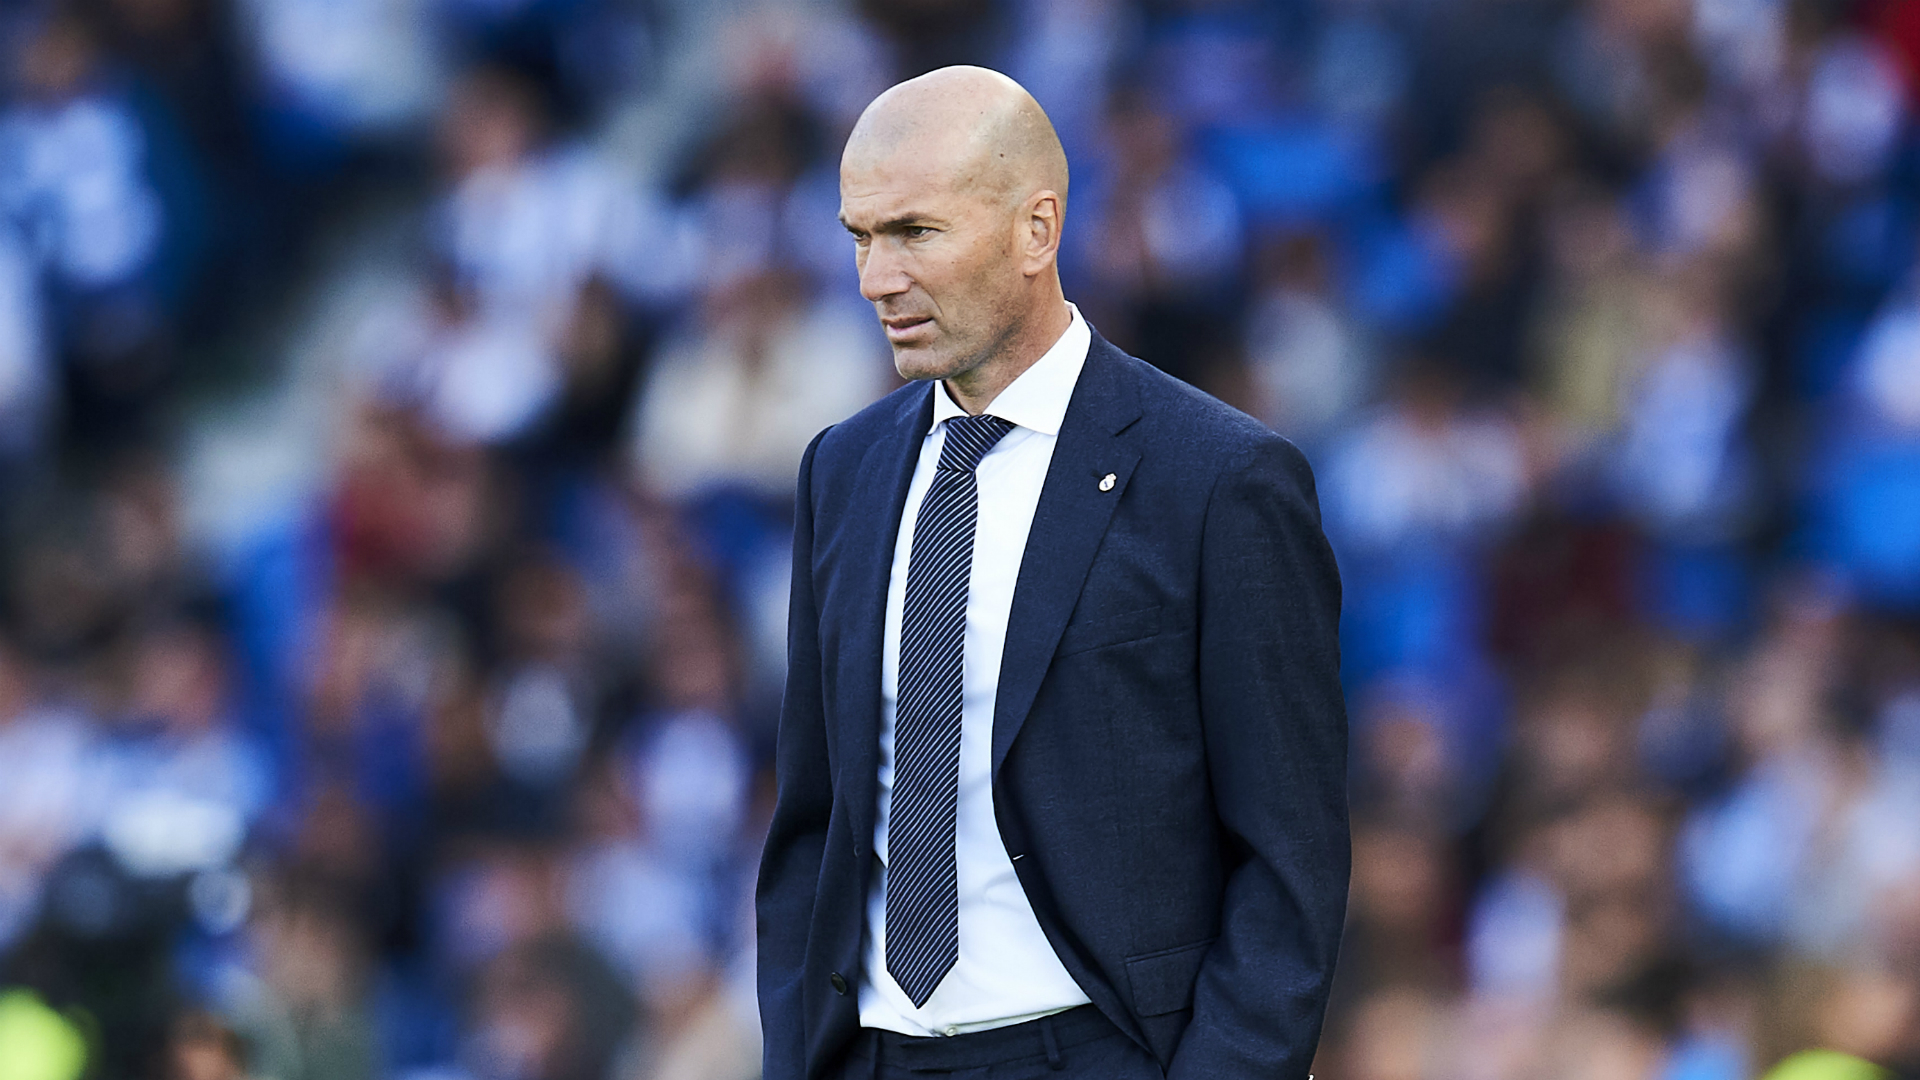 Zidane vows to make changes as Navas & Bale face uncertain futures